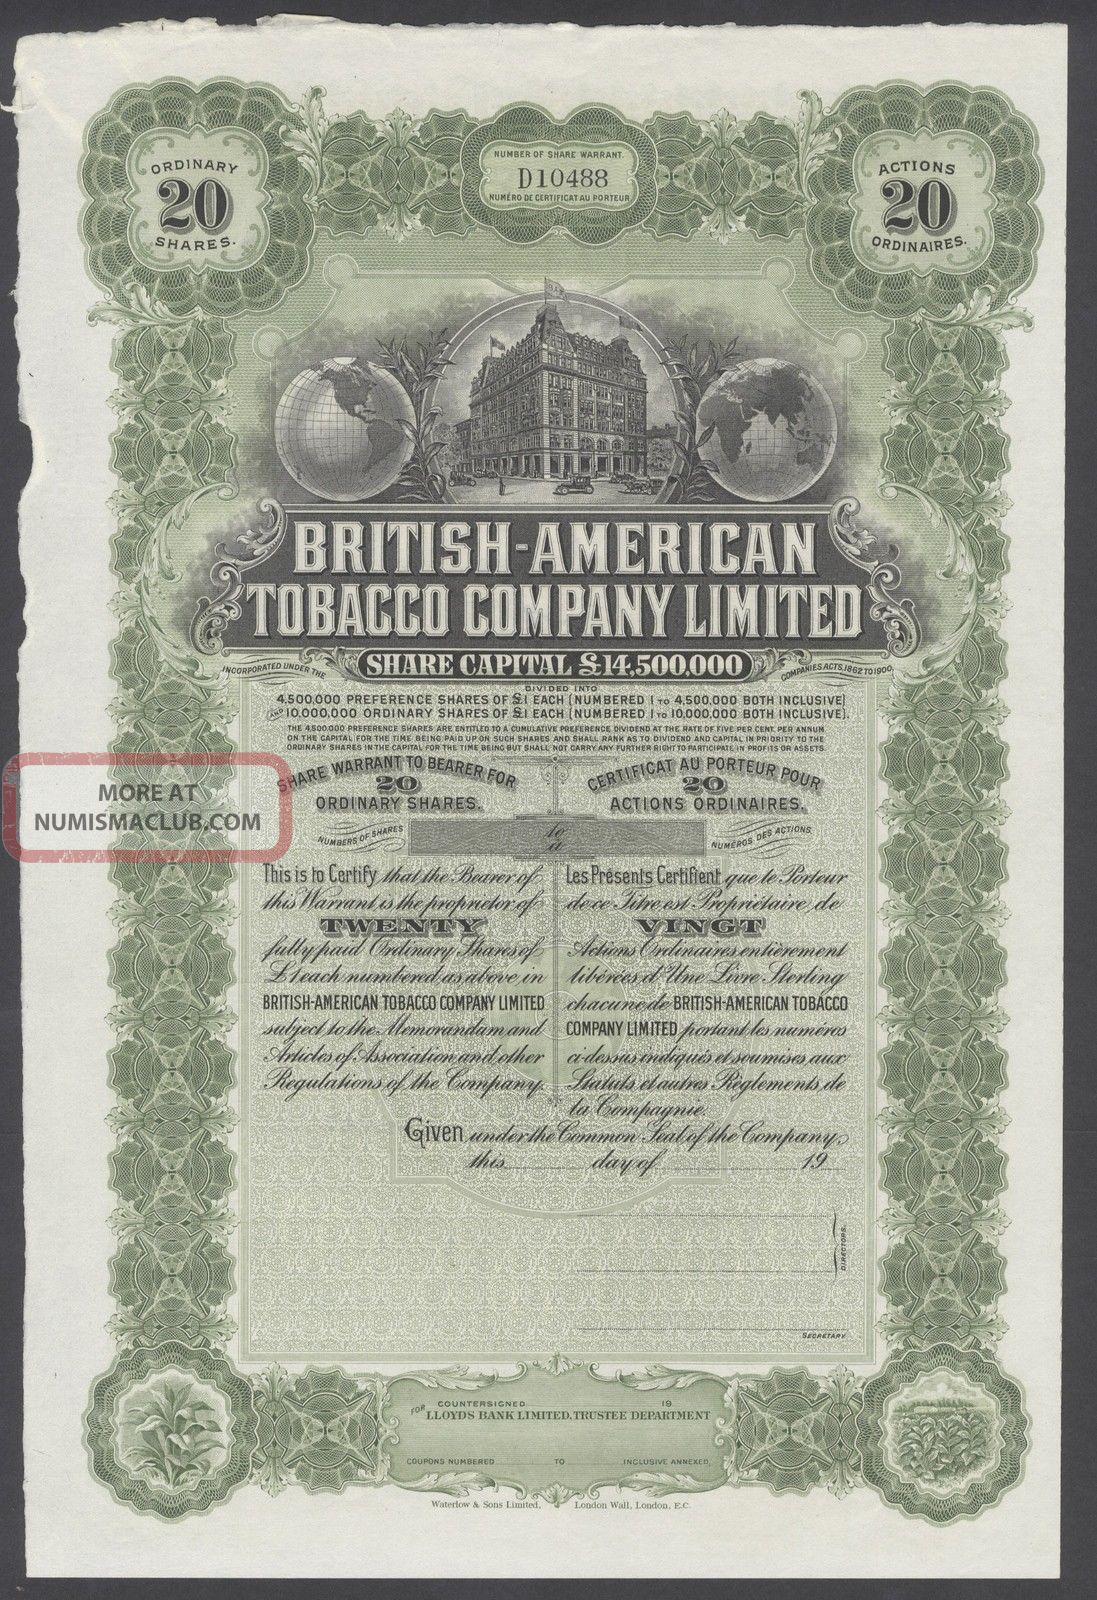 United States 1900s Uncirculated Ornate Bond British - American Tobacco Co.  R3335 World photo